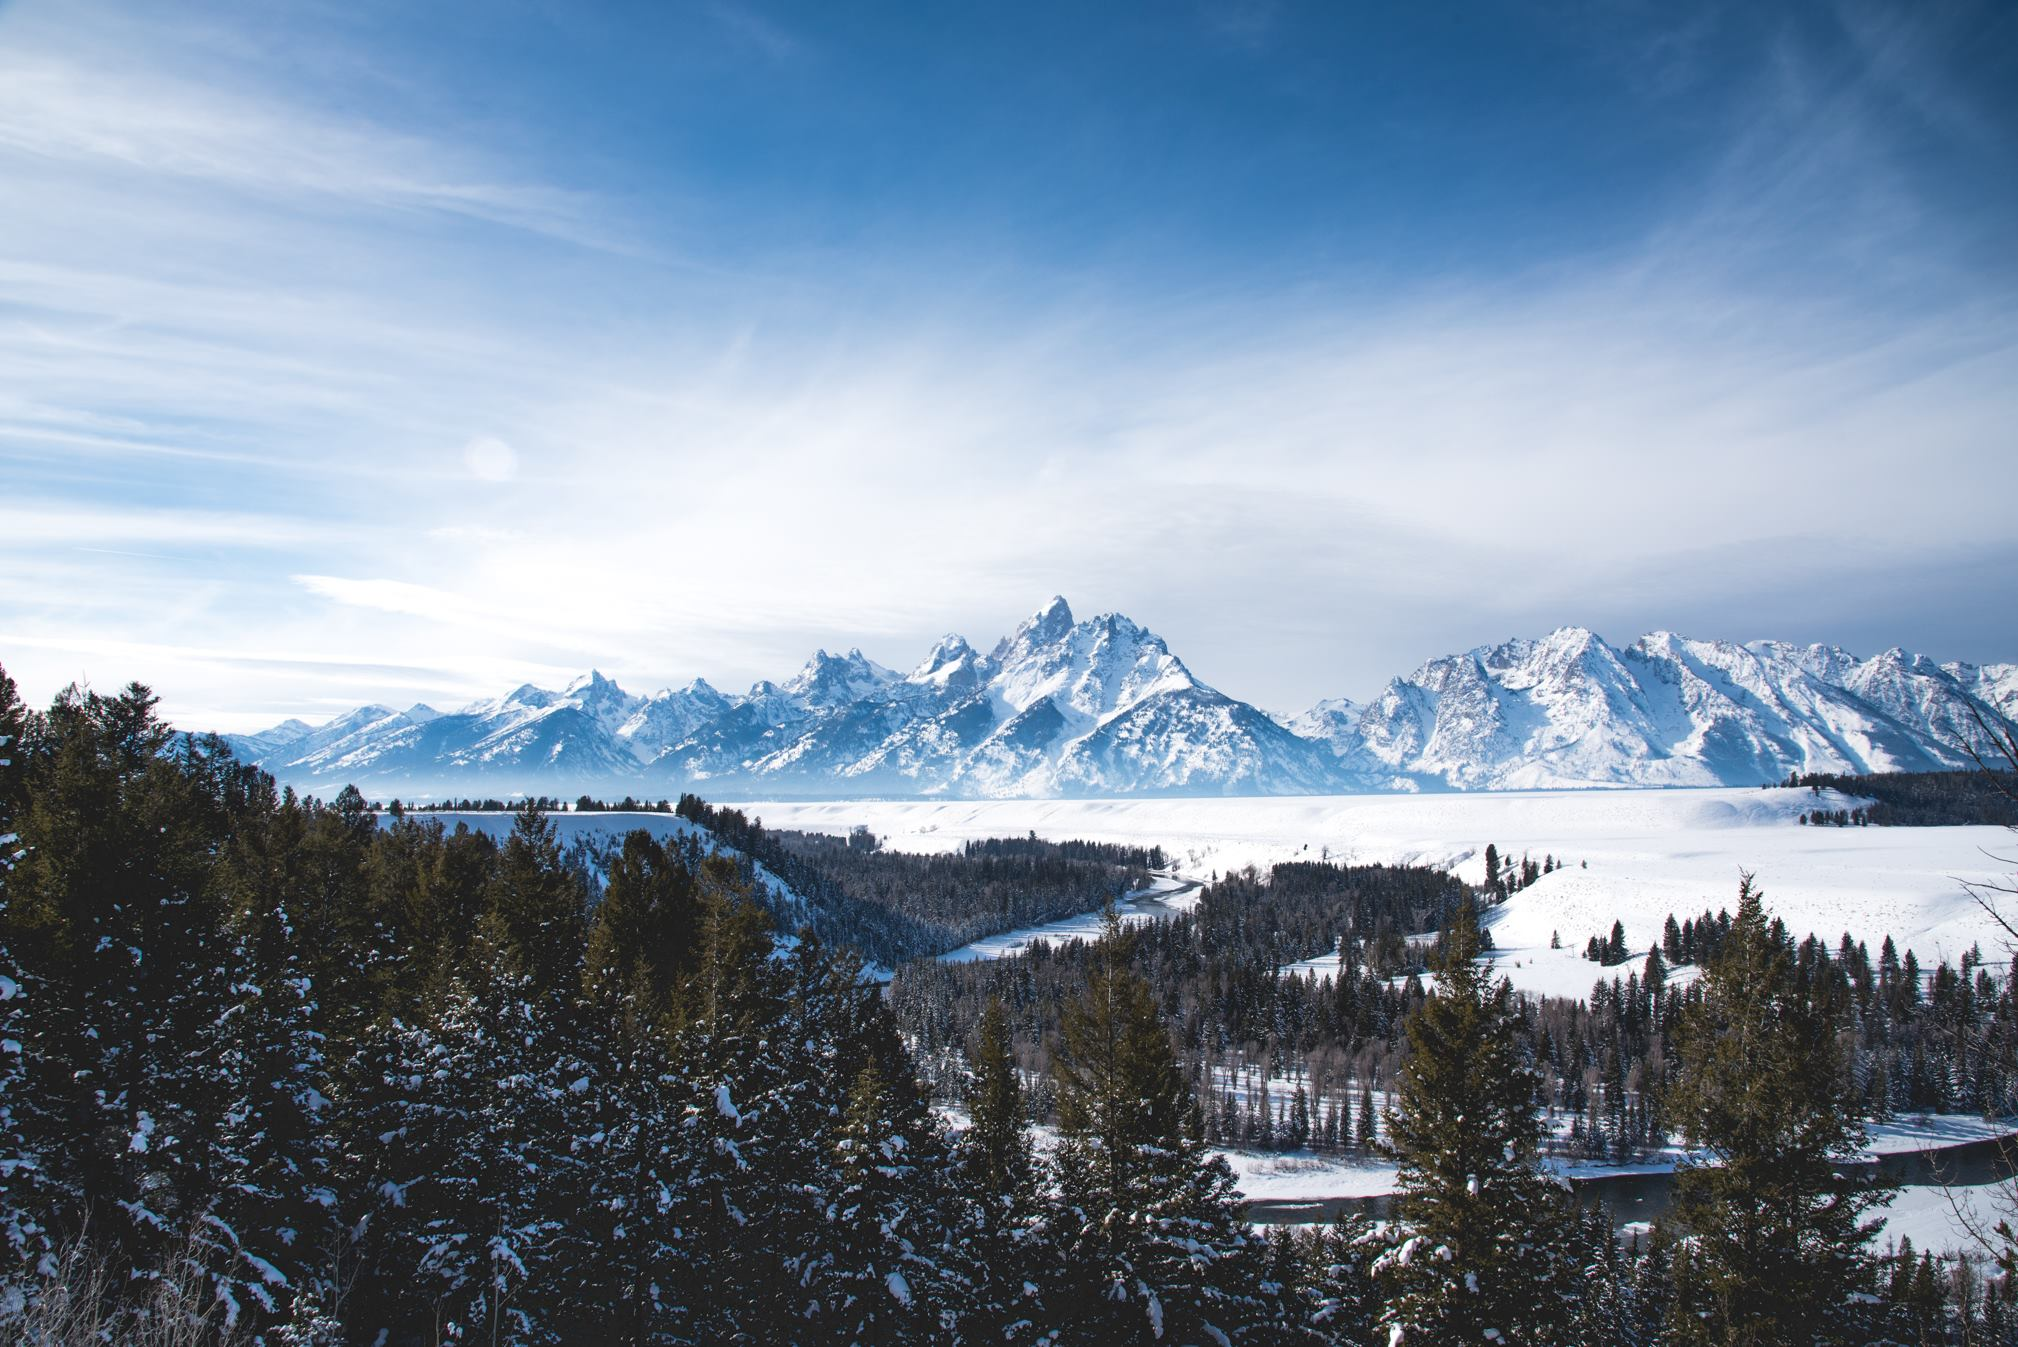 Blue, wintery image of the Tetons.